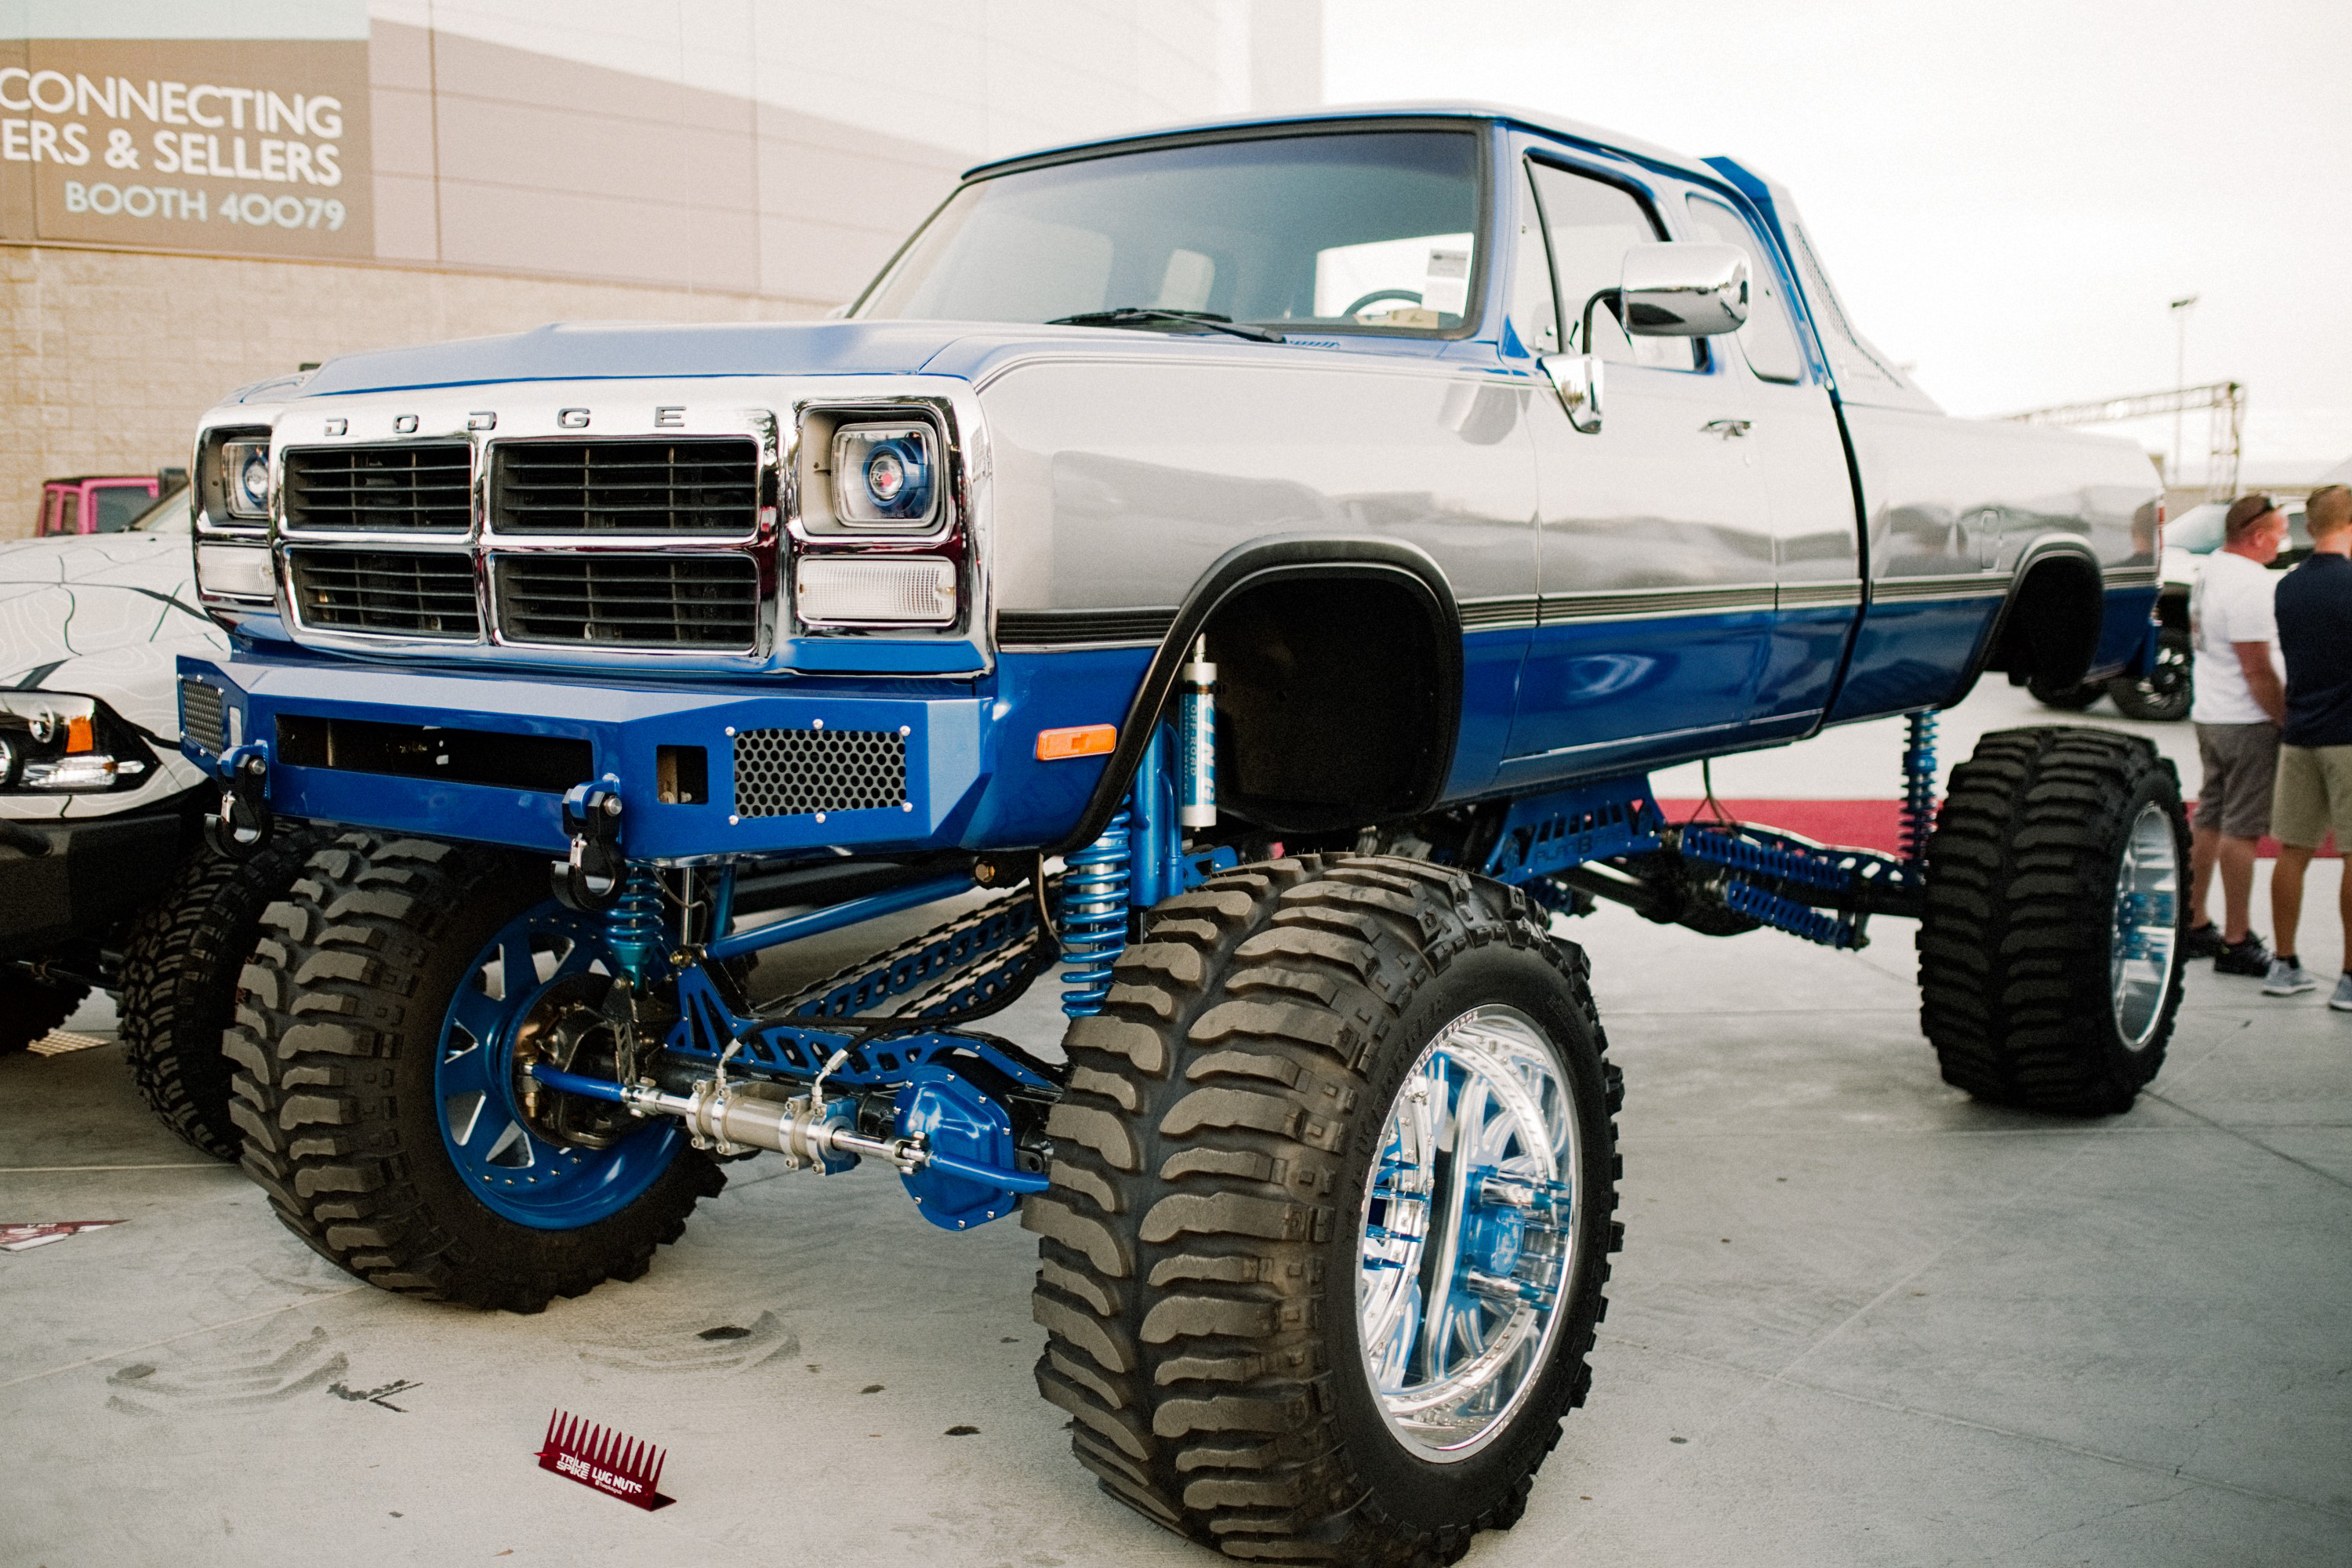 Vintage trucks from the SEMA 2018 show